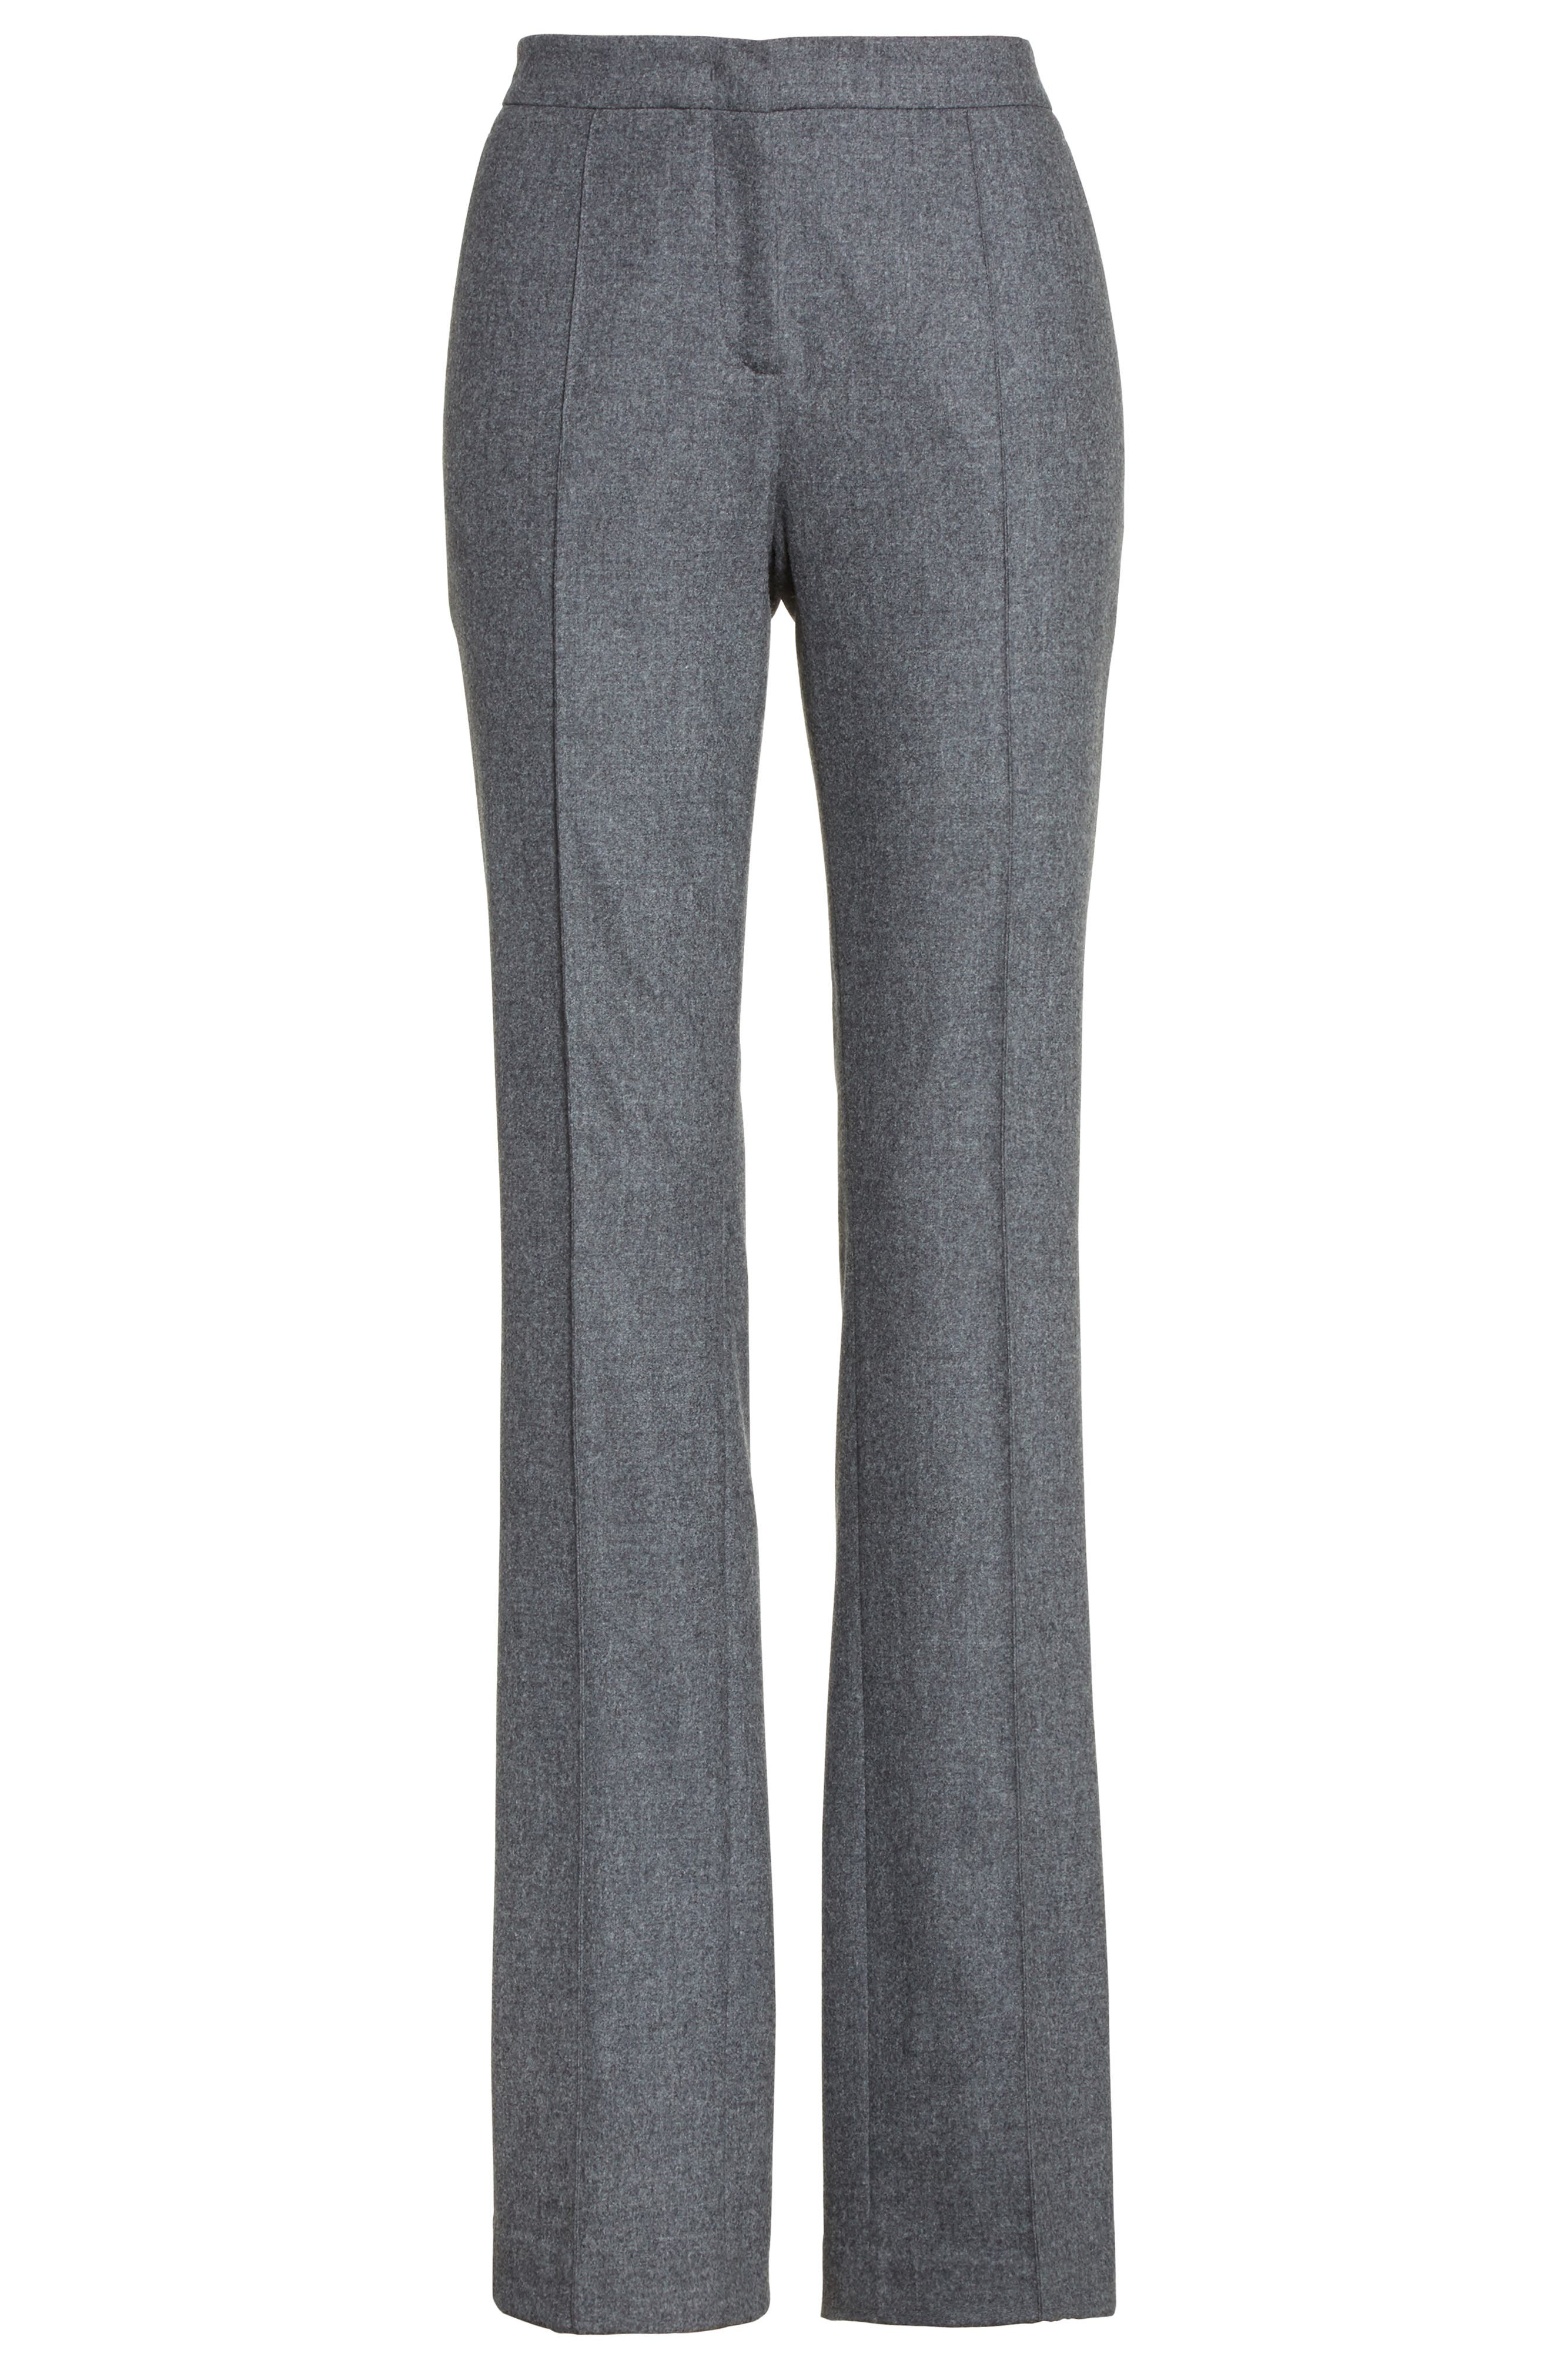 High Waist Flannel Trousers,                             Alternate thumbnail 4, color,                             Grey